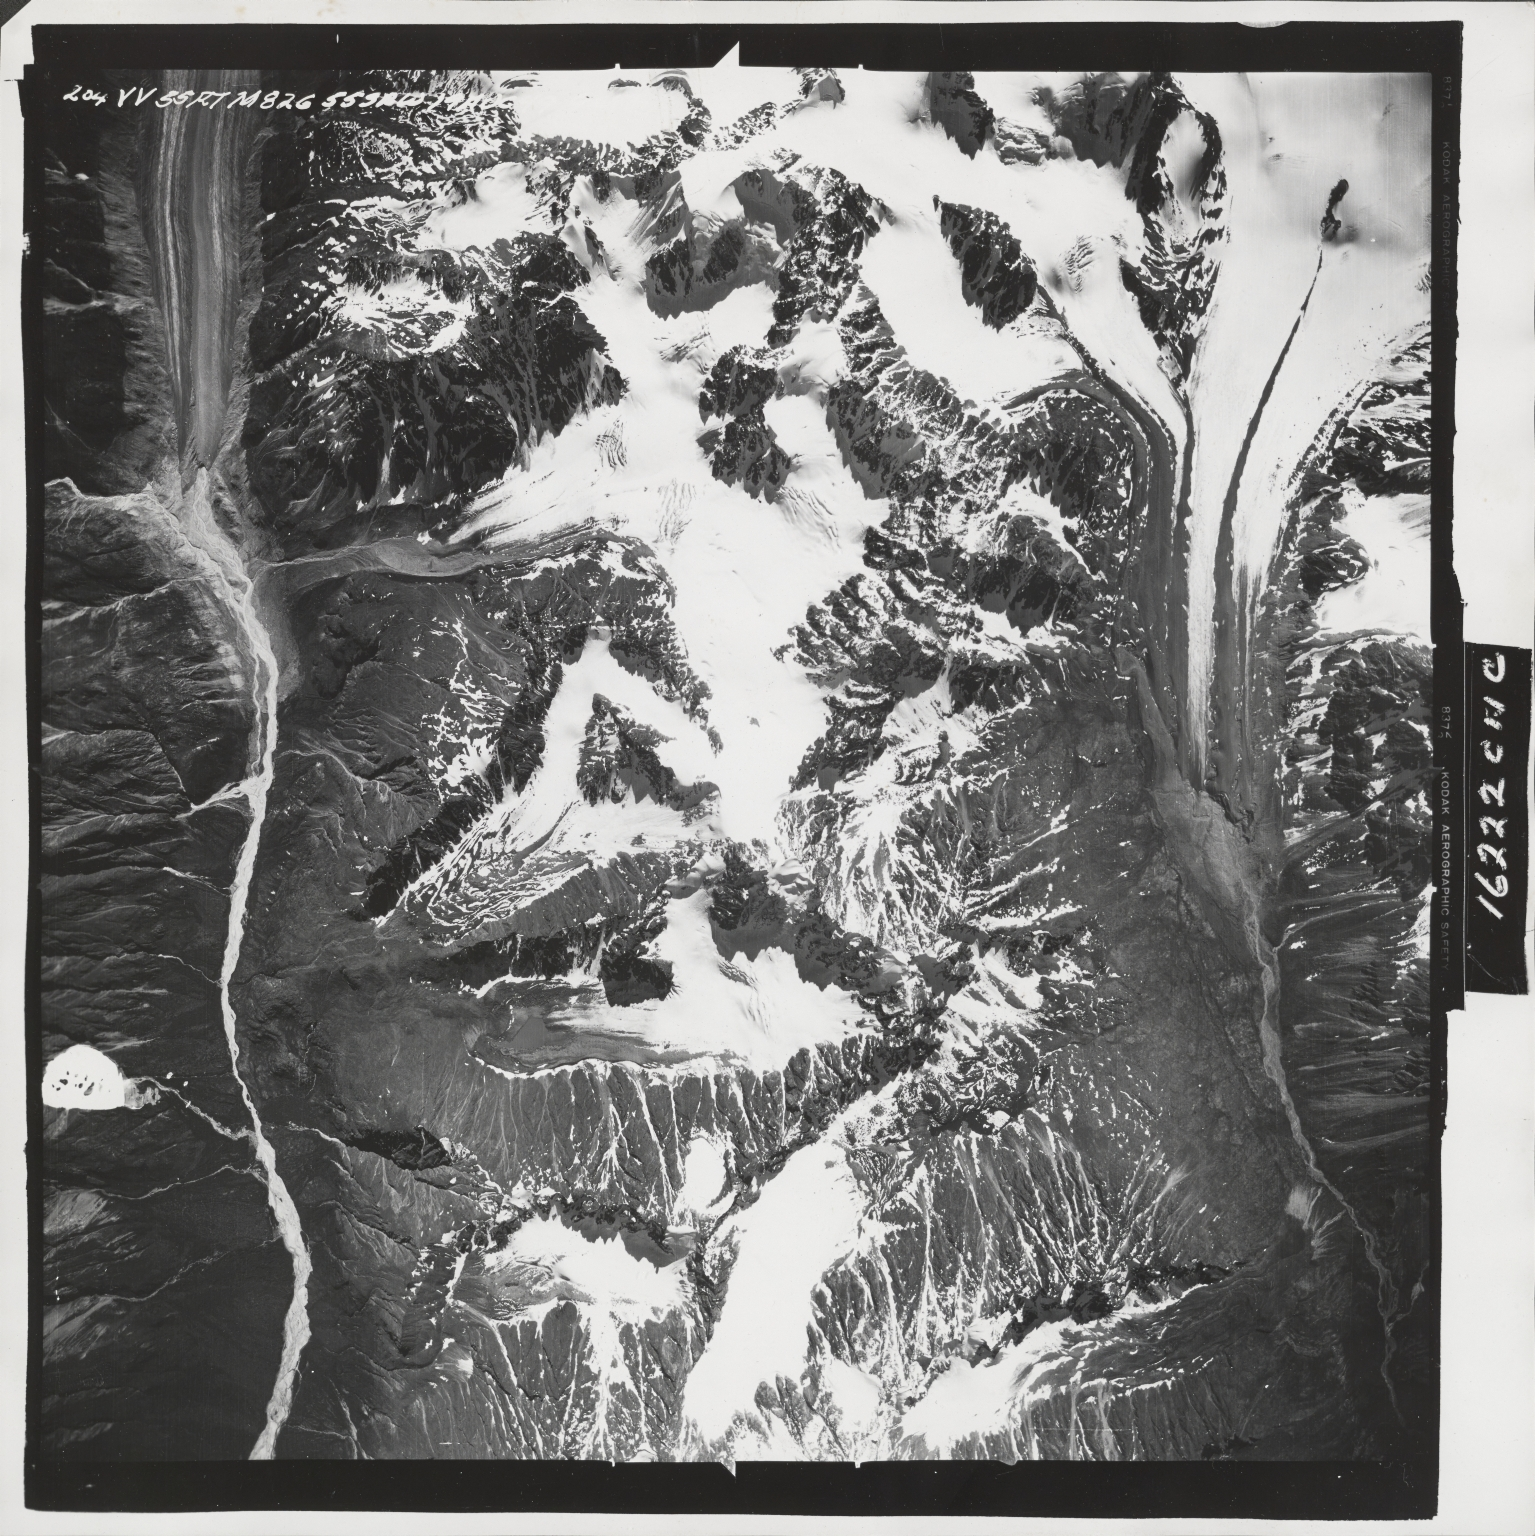 Talkeetna Mountains, aerial photograph M 826 204, Alaska